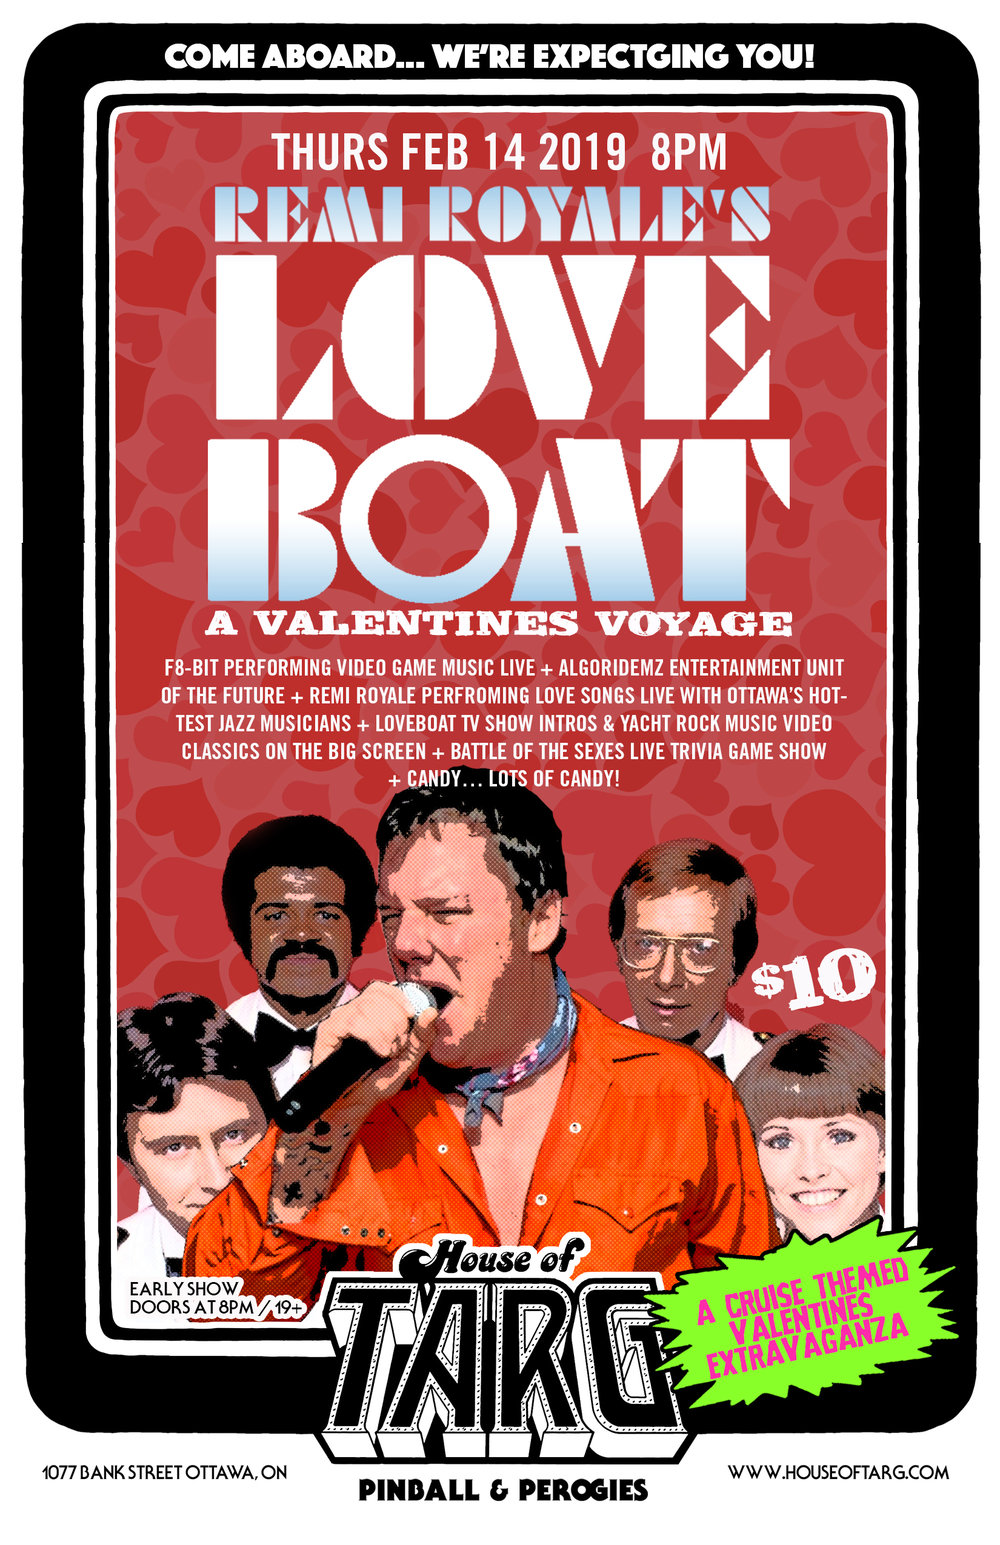 LOVE BOAT feb 14 2019.jpg